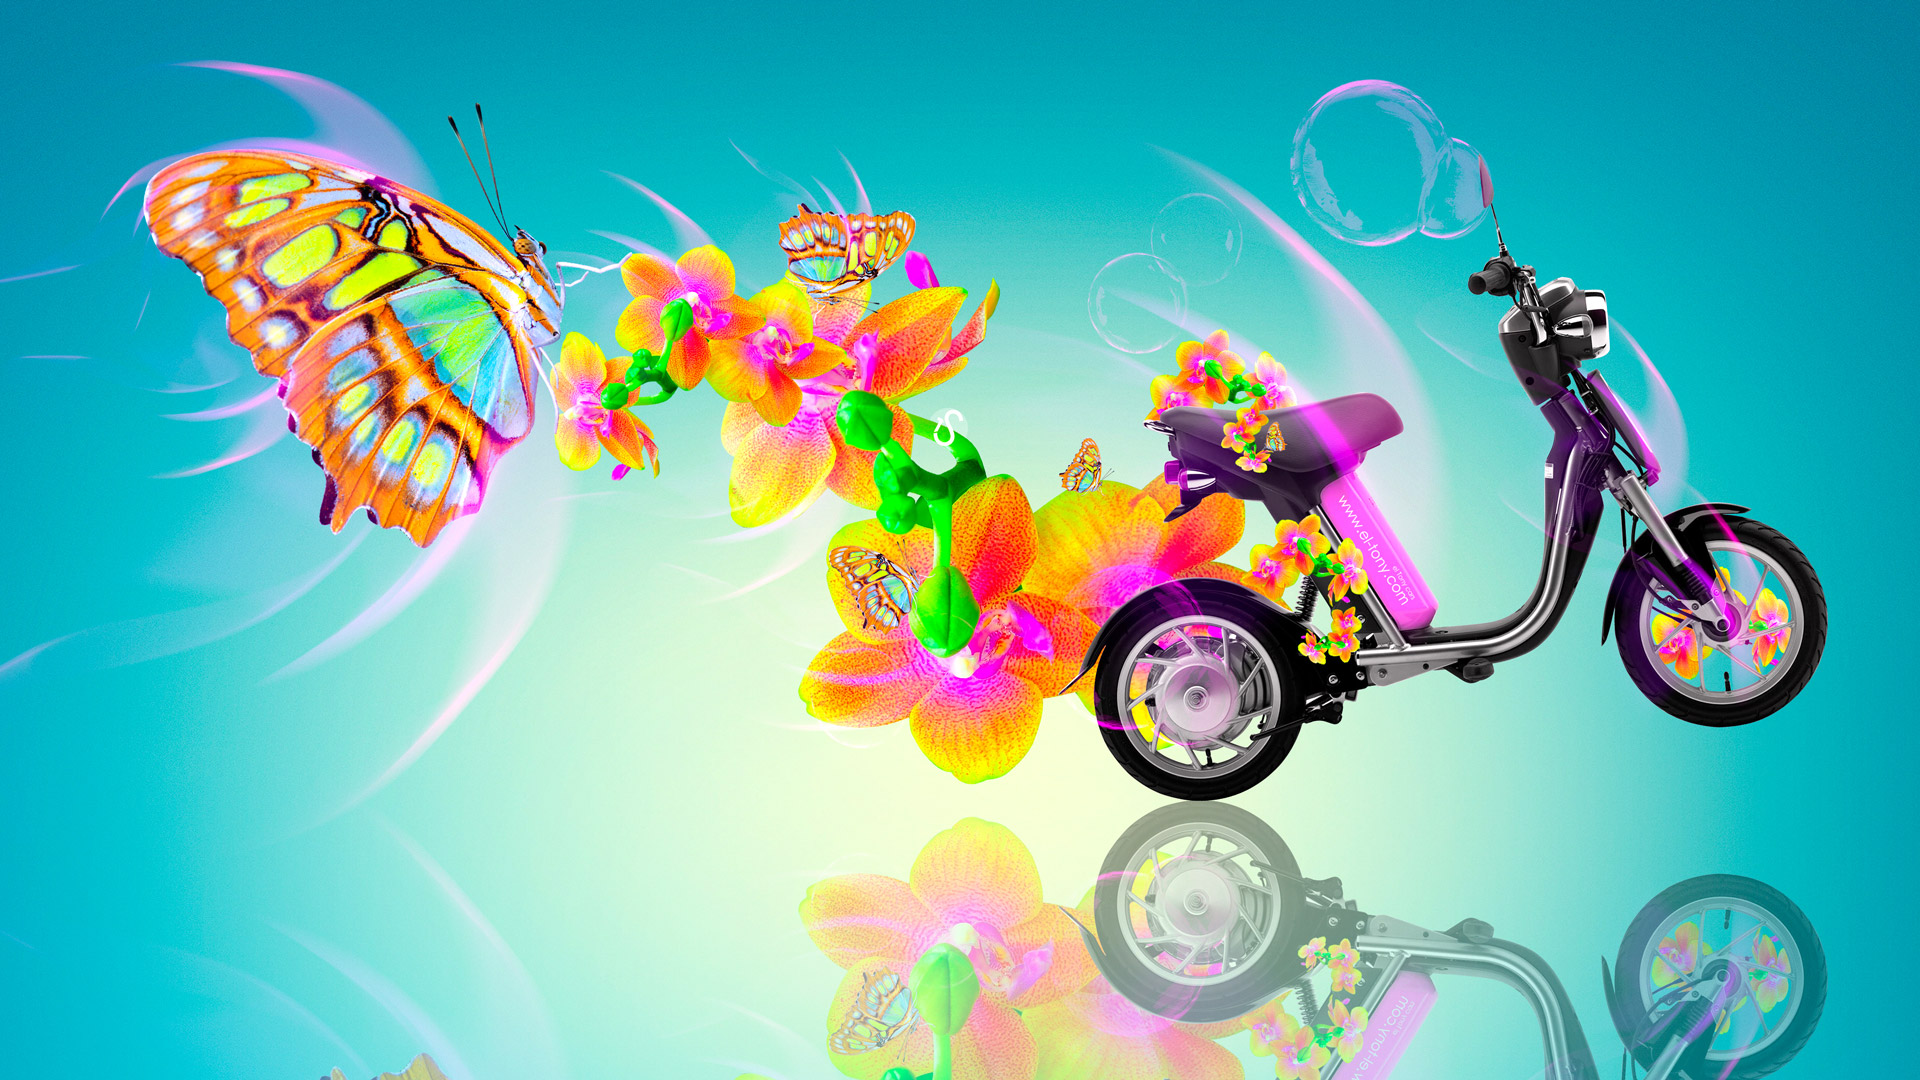 Incroyable Fantasy Mini Moto Butterfly Flowers Bike 2014 Multicolors